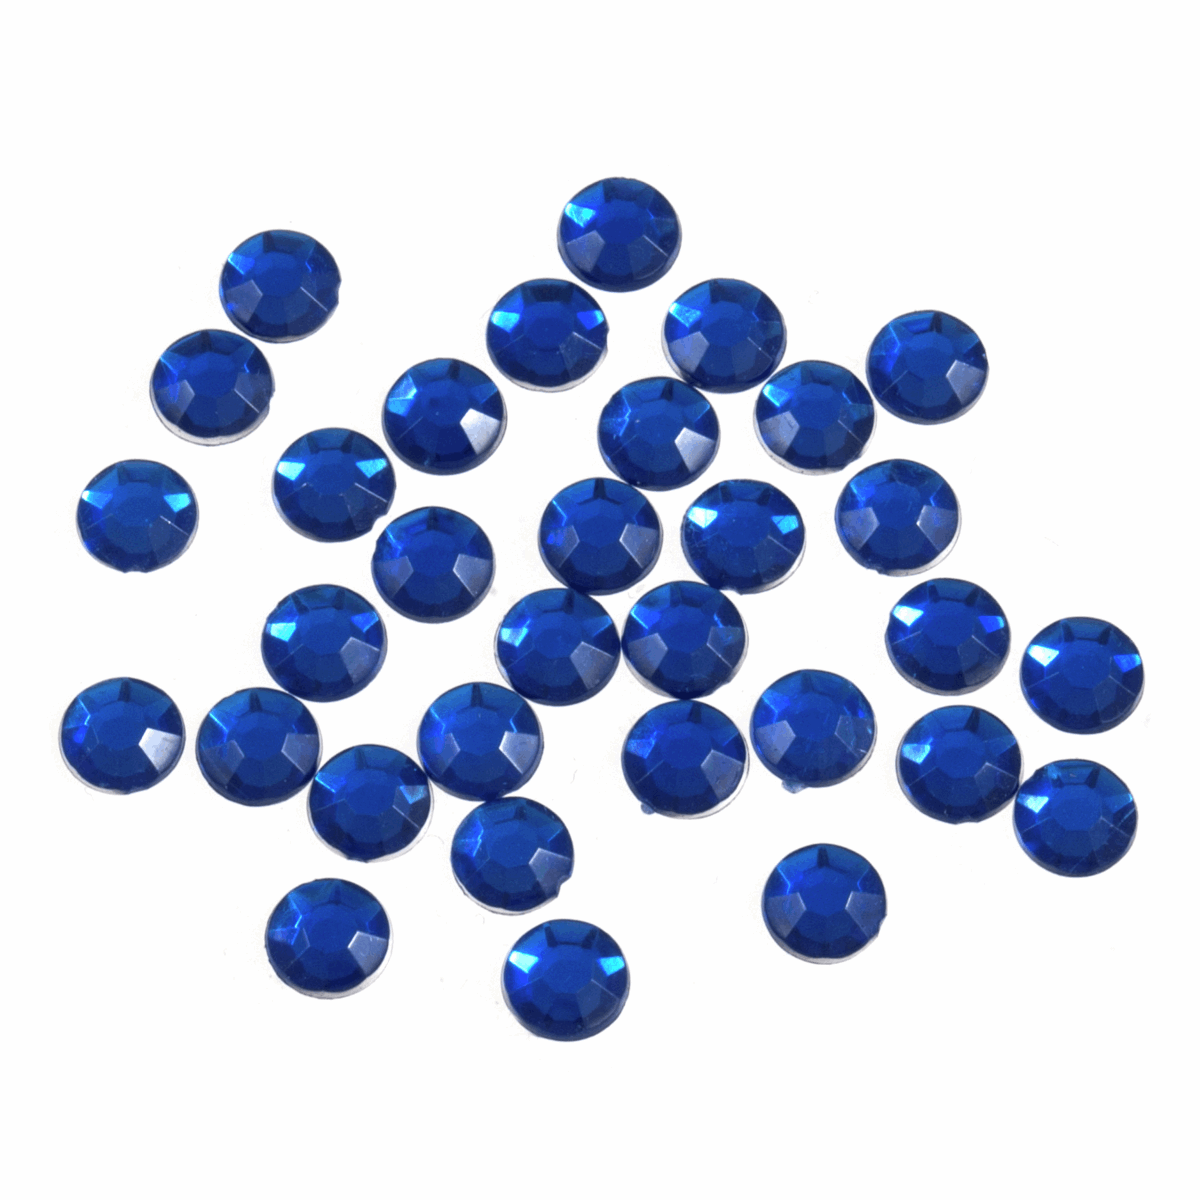 Picture of Acrylic Stones: Glue-On: Round: Large-7mm: Royal